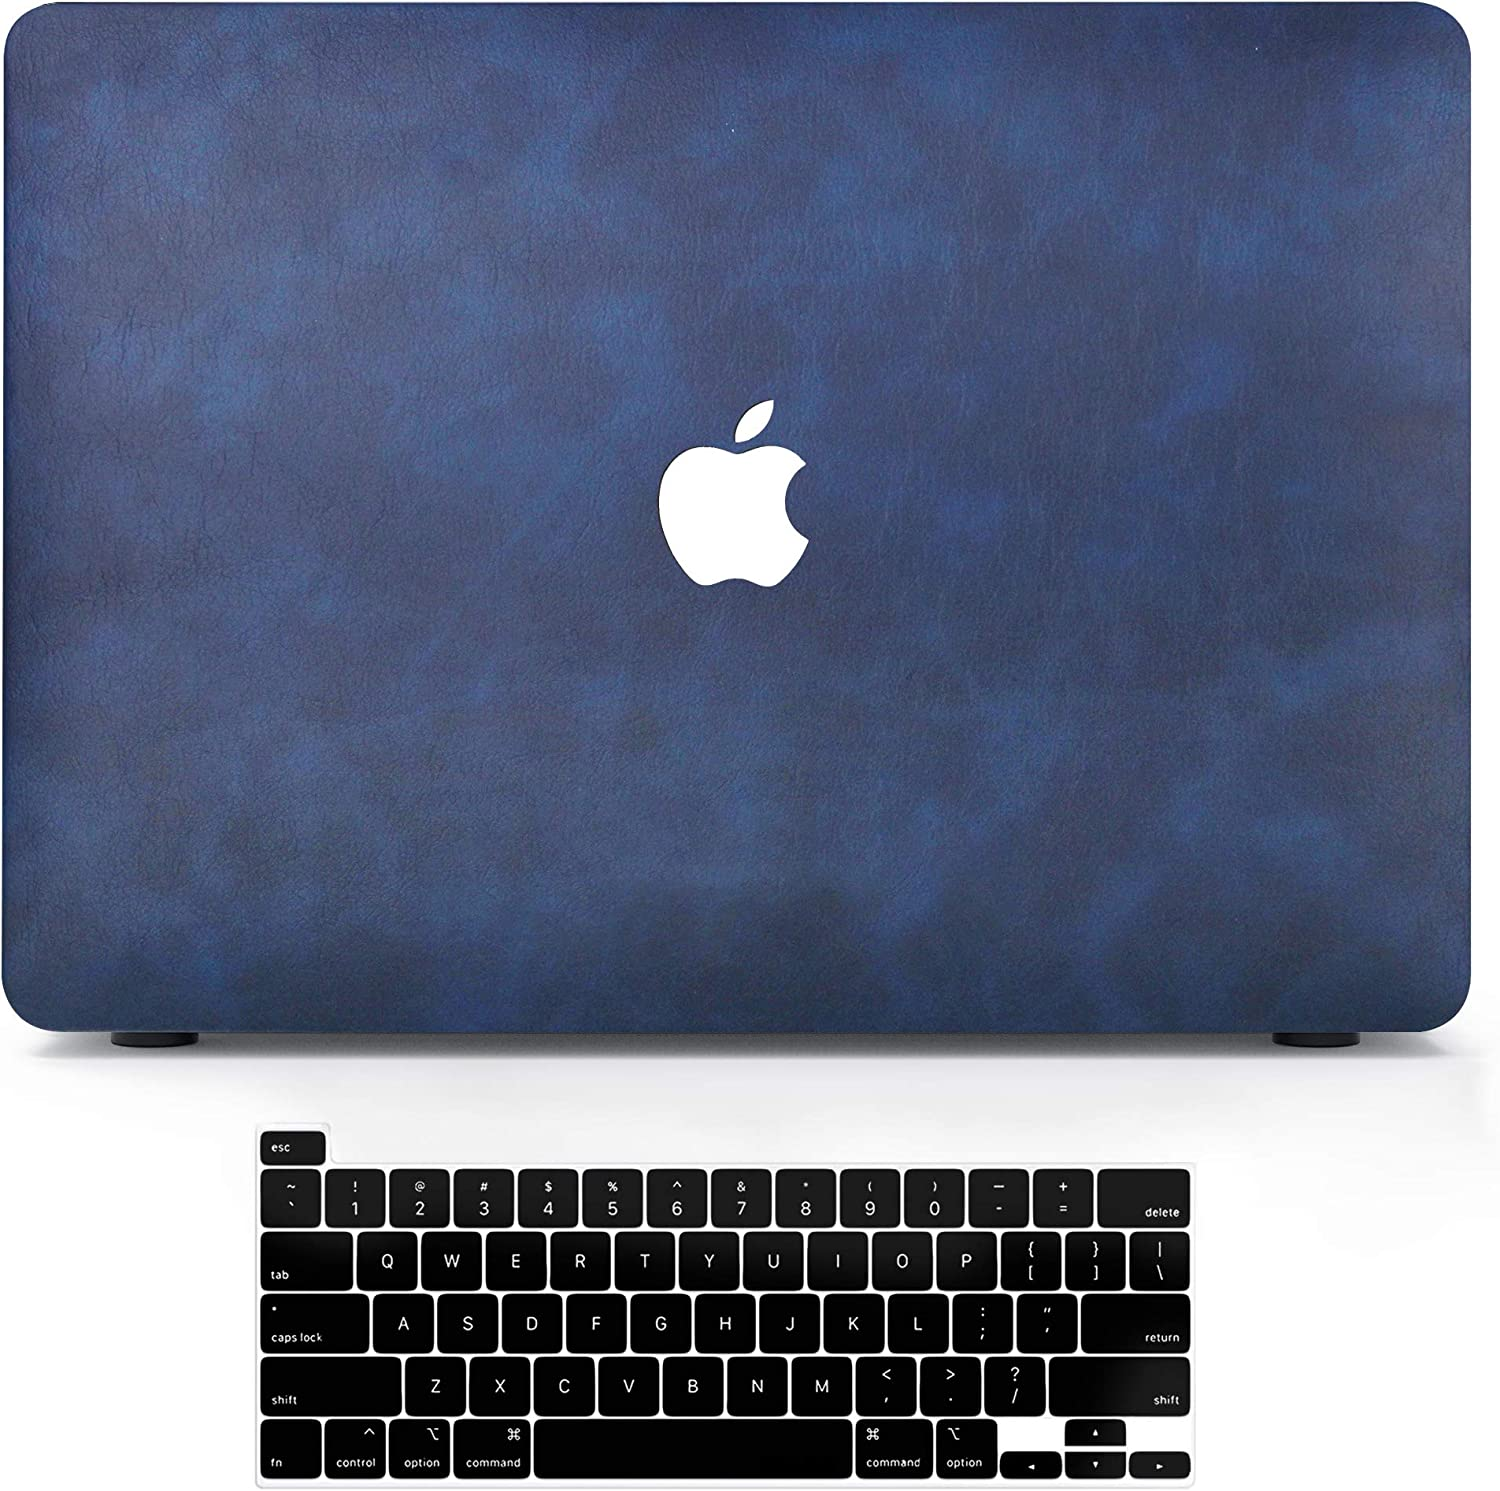 MacBook Pro 13 Inch Case 2020 2019 2018 2017 2016 Release A2251 A2289 A2159 A1708 A1989 A1706 PU Leather Coated Plastic Hard Shell Case with Keyboard Cover, Laptop Case for Apple MacBook Pro 13.3 inch